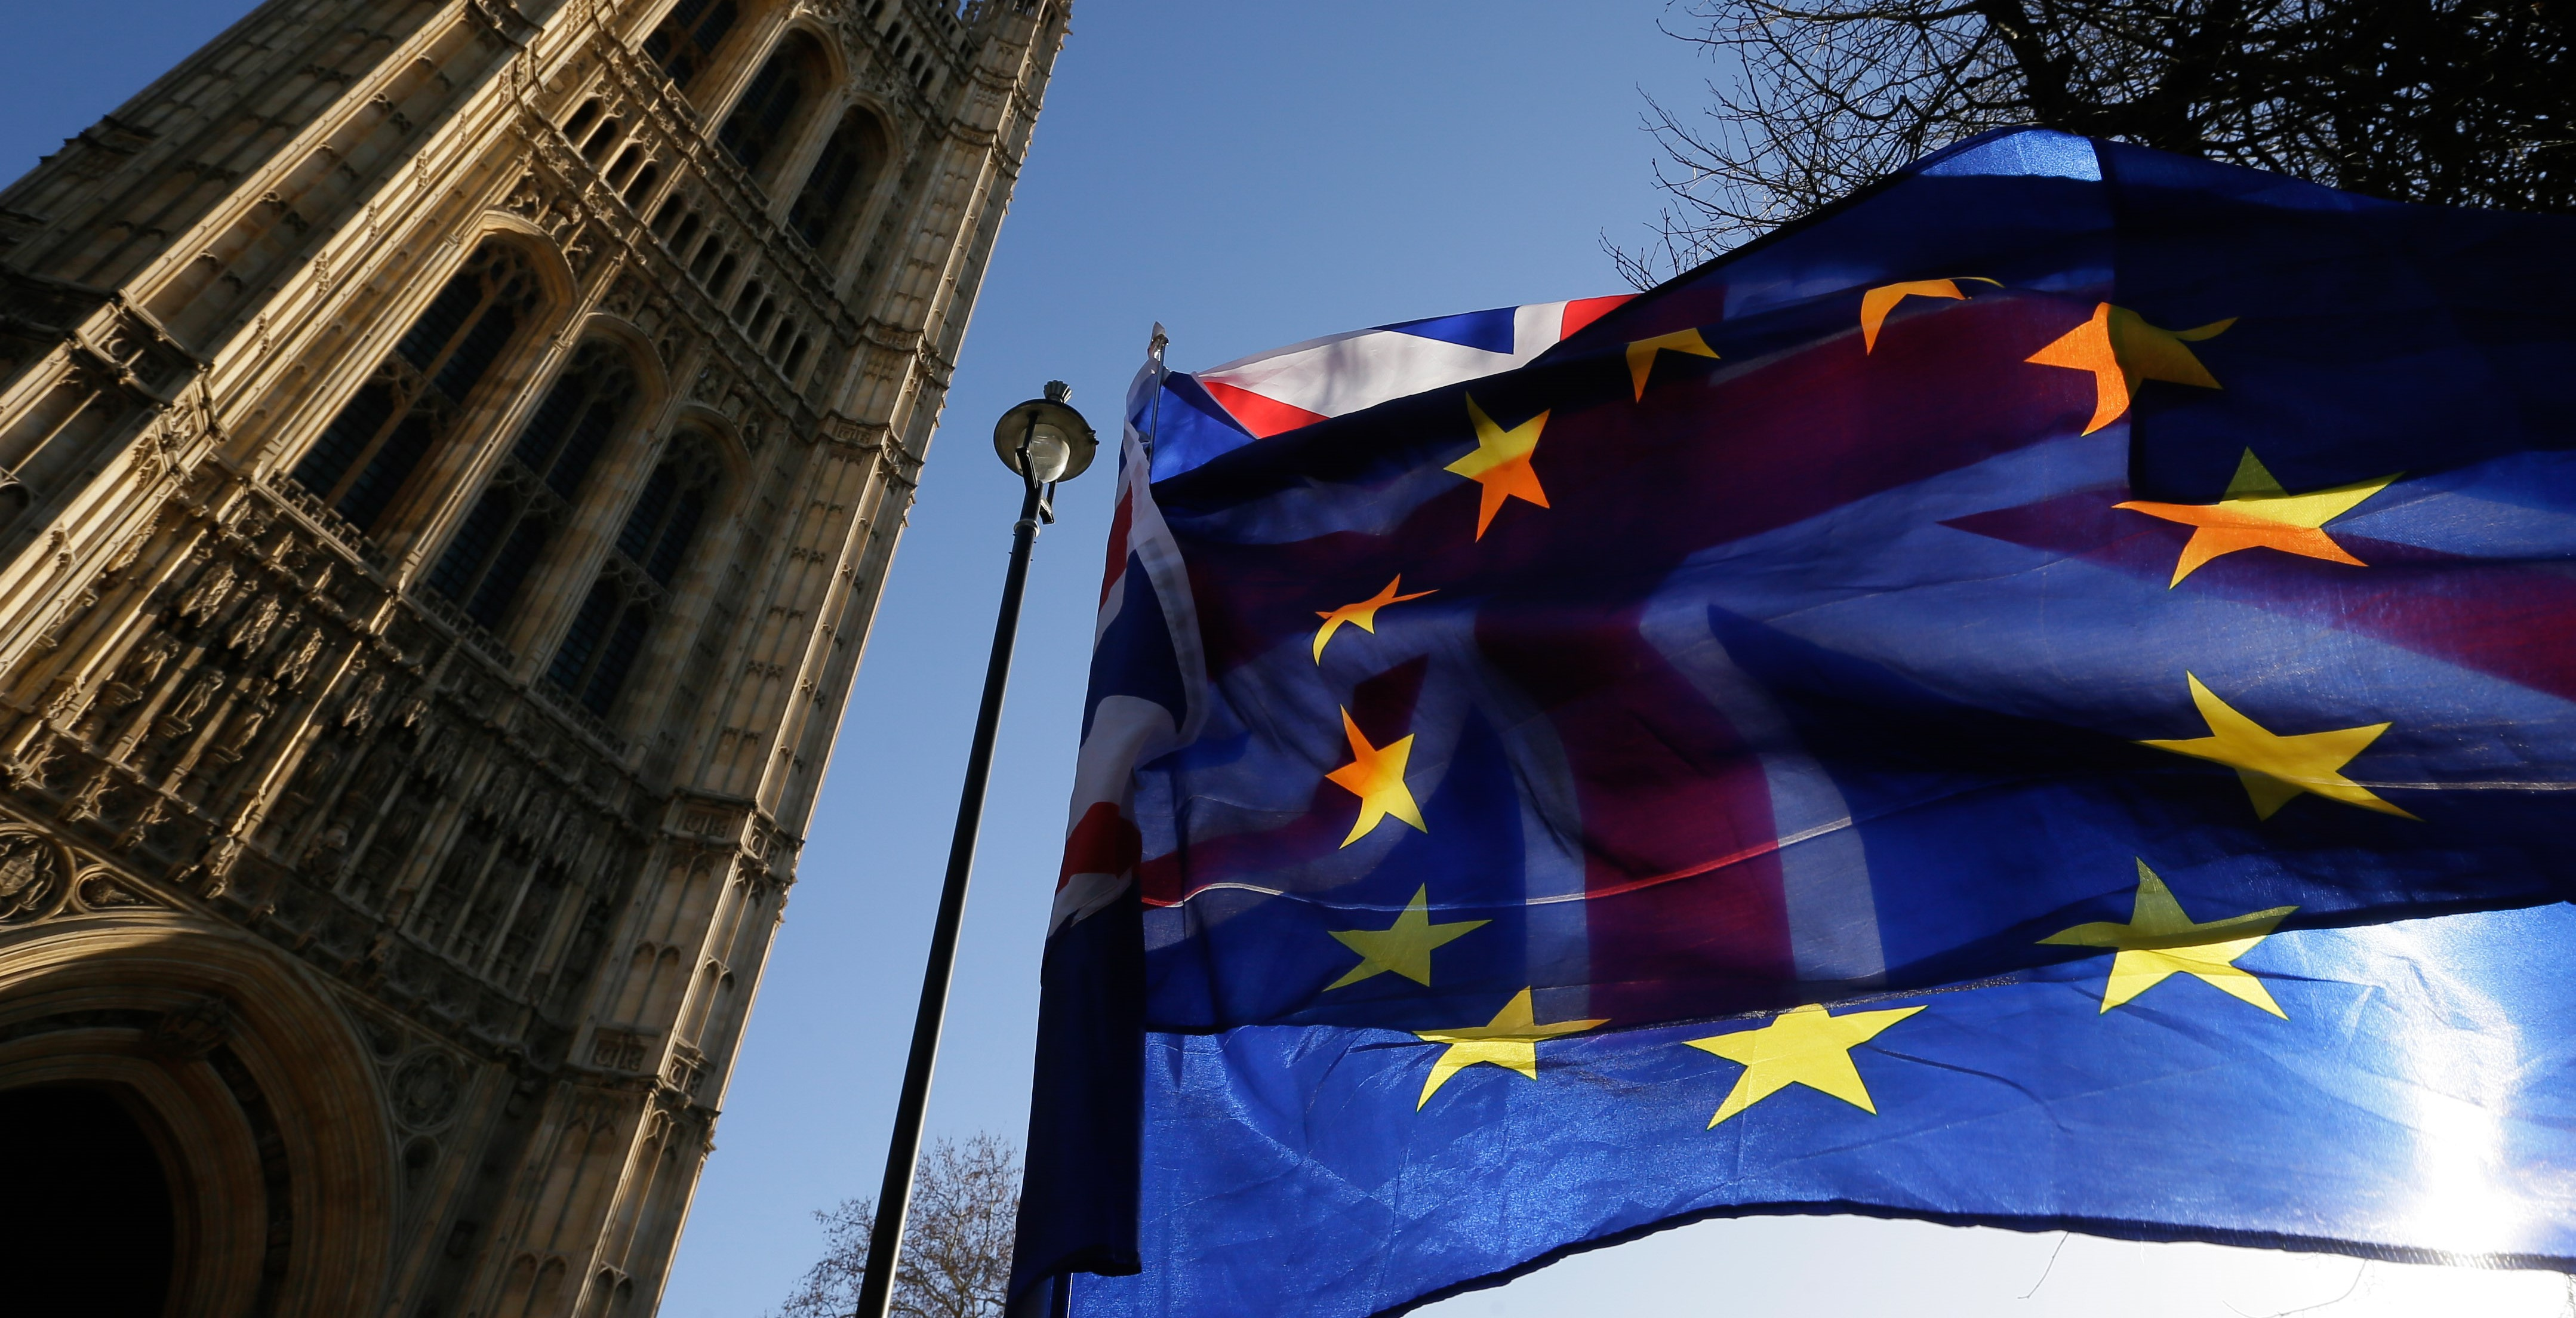 VAT remains an outstanding issue in UK-EU talks - UK source